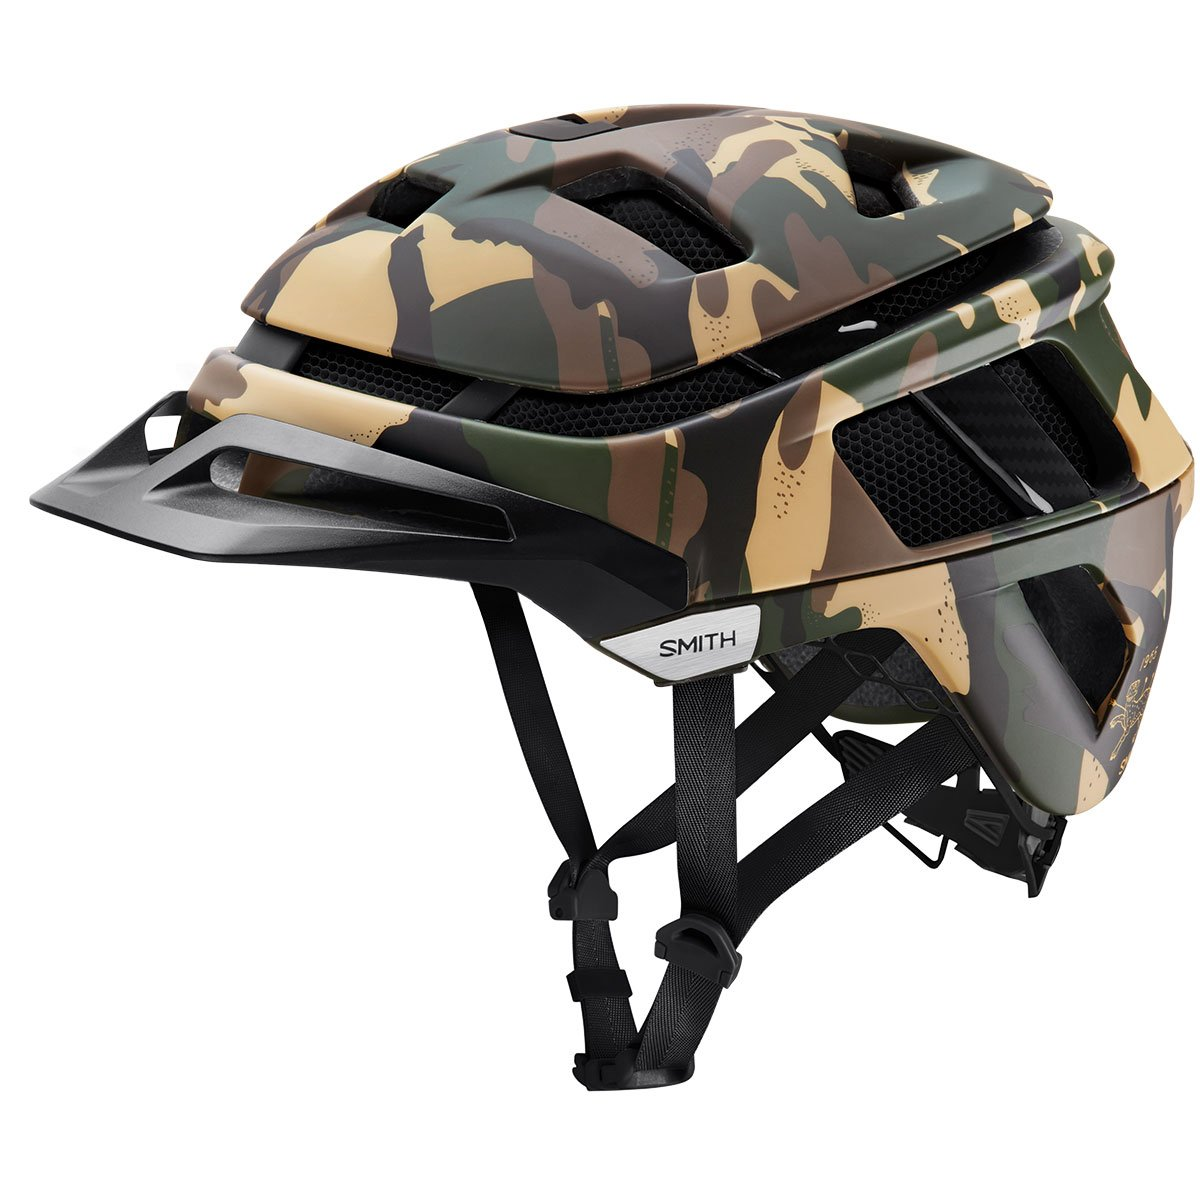 Smith Optics Forefront Adult MTB Cycling Helmet - Matte Disruption Camo/Small